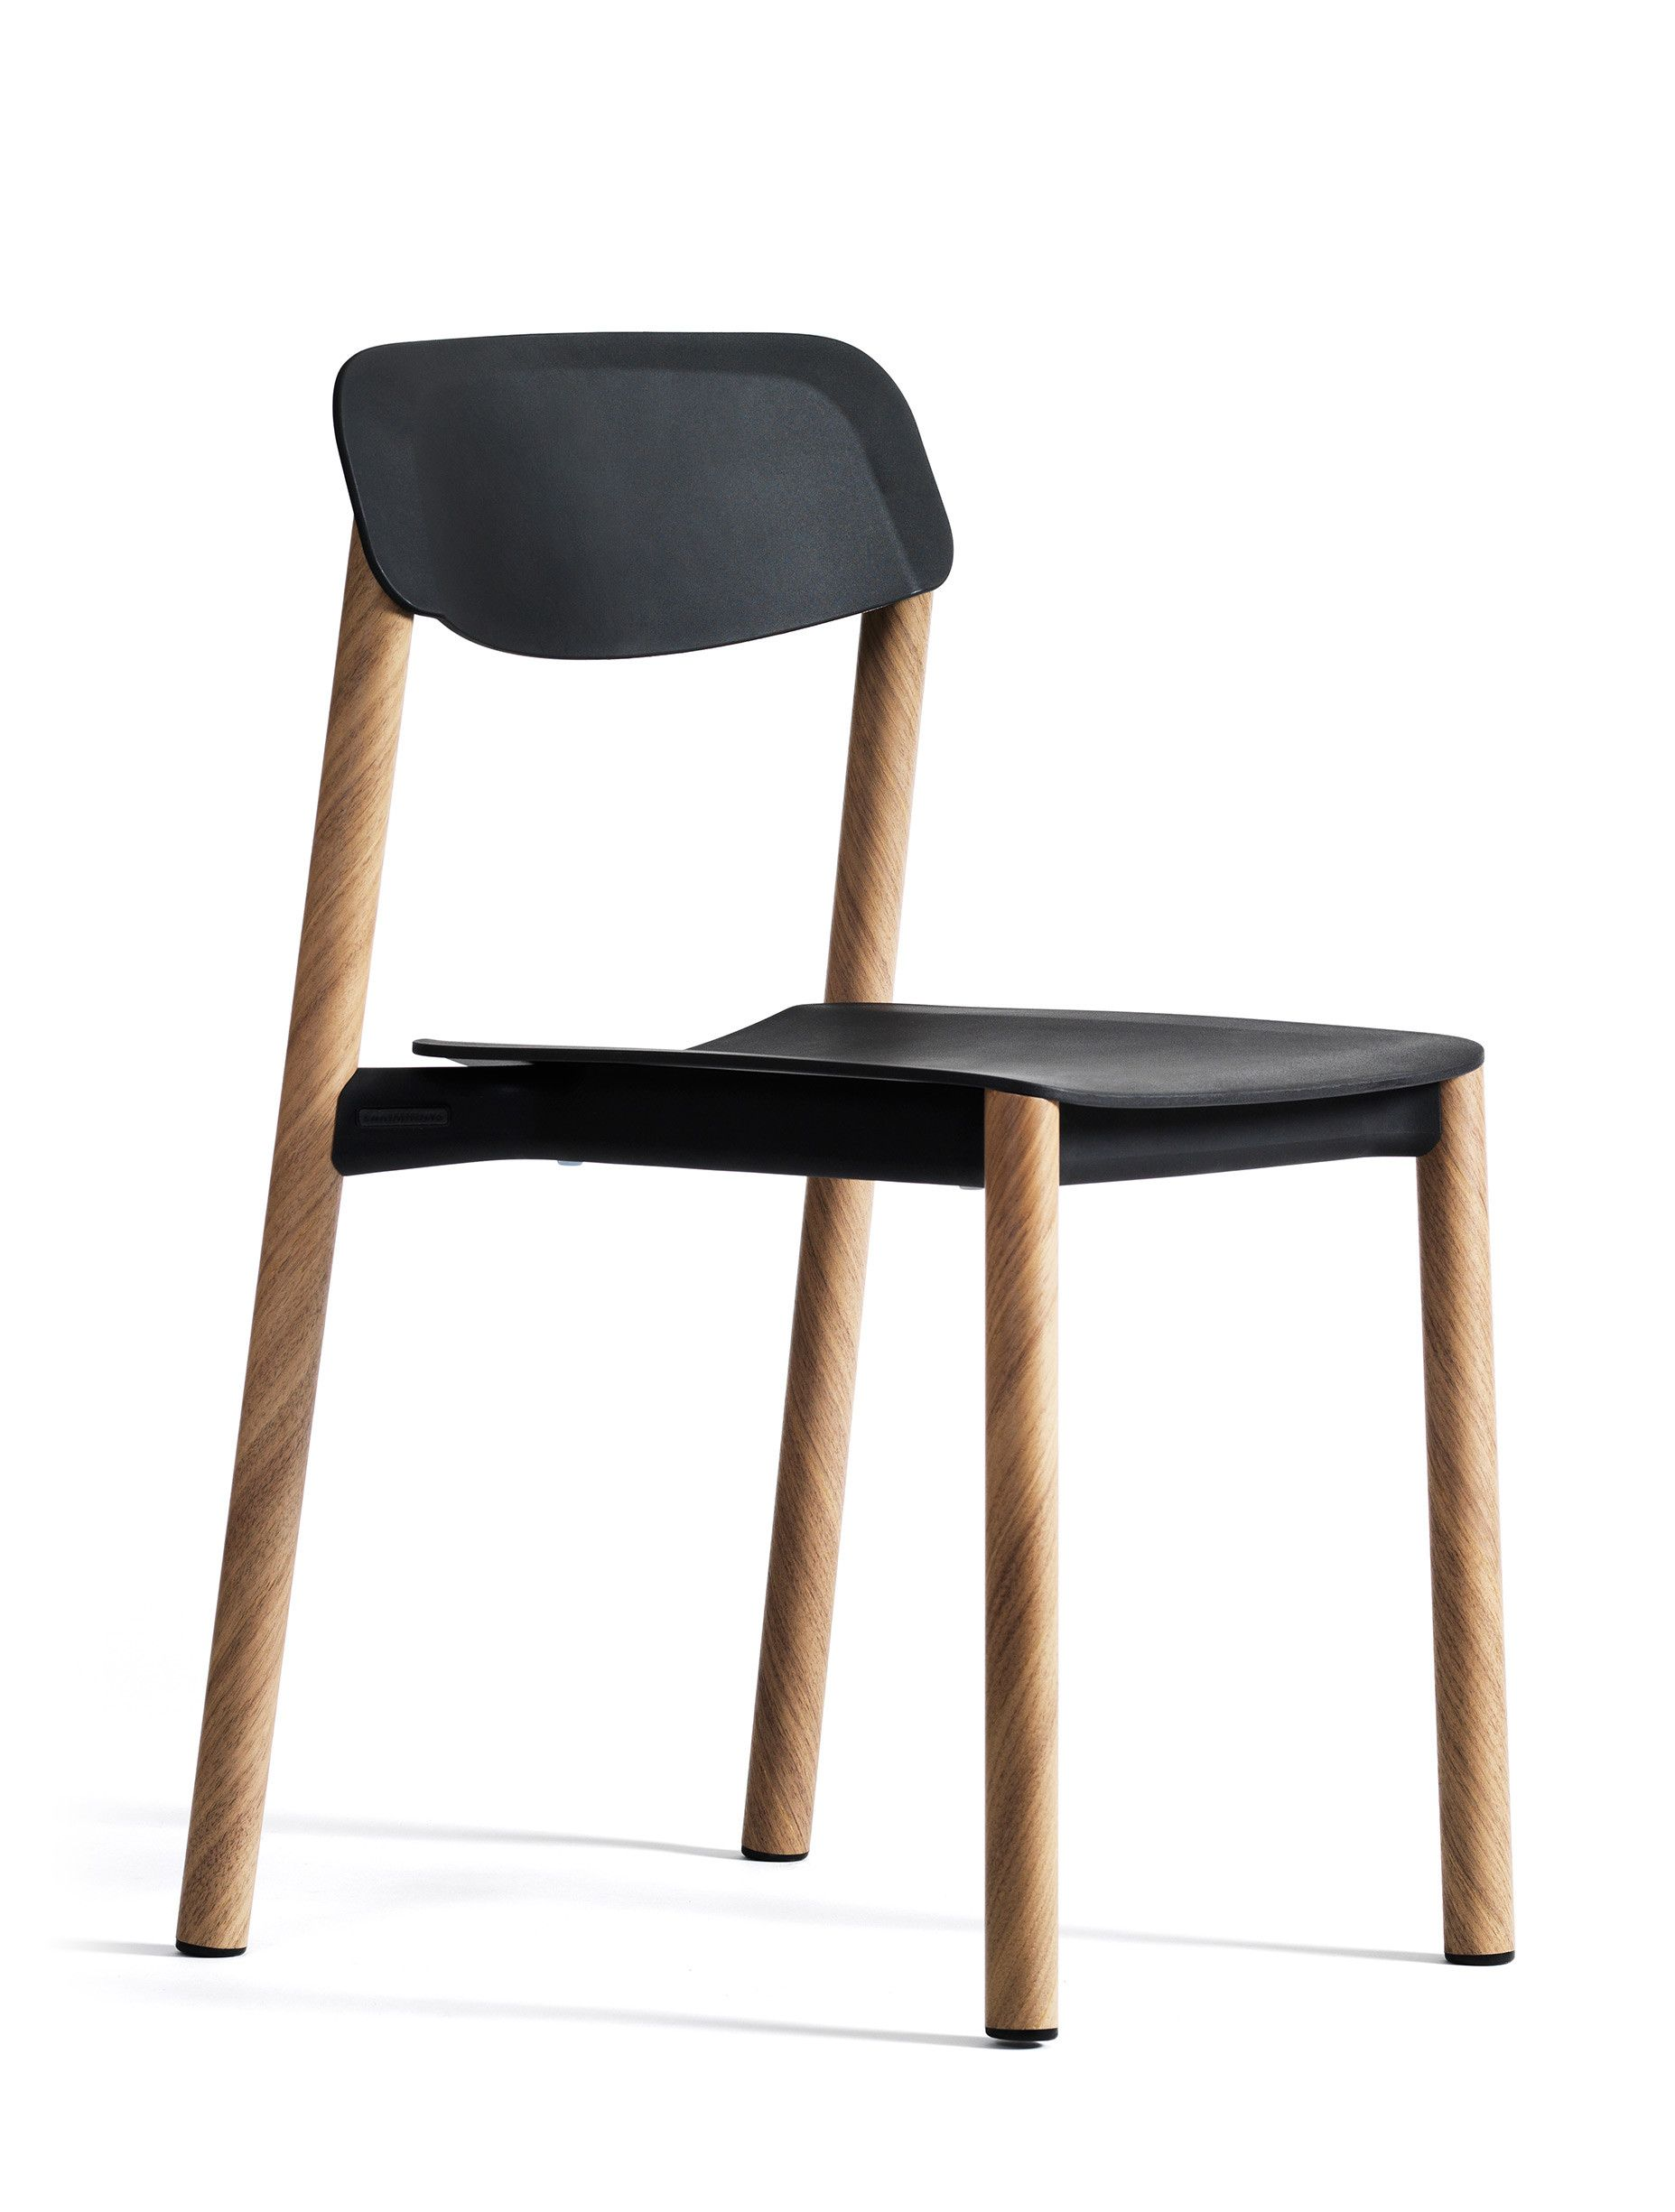 Penne bines The Spirit Scandinavian Chair Design With The Requirements The Modern Contract Furniture